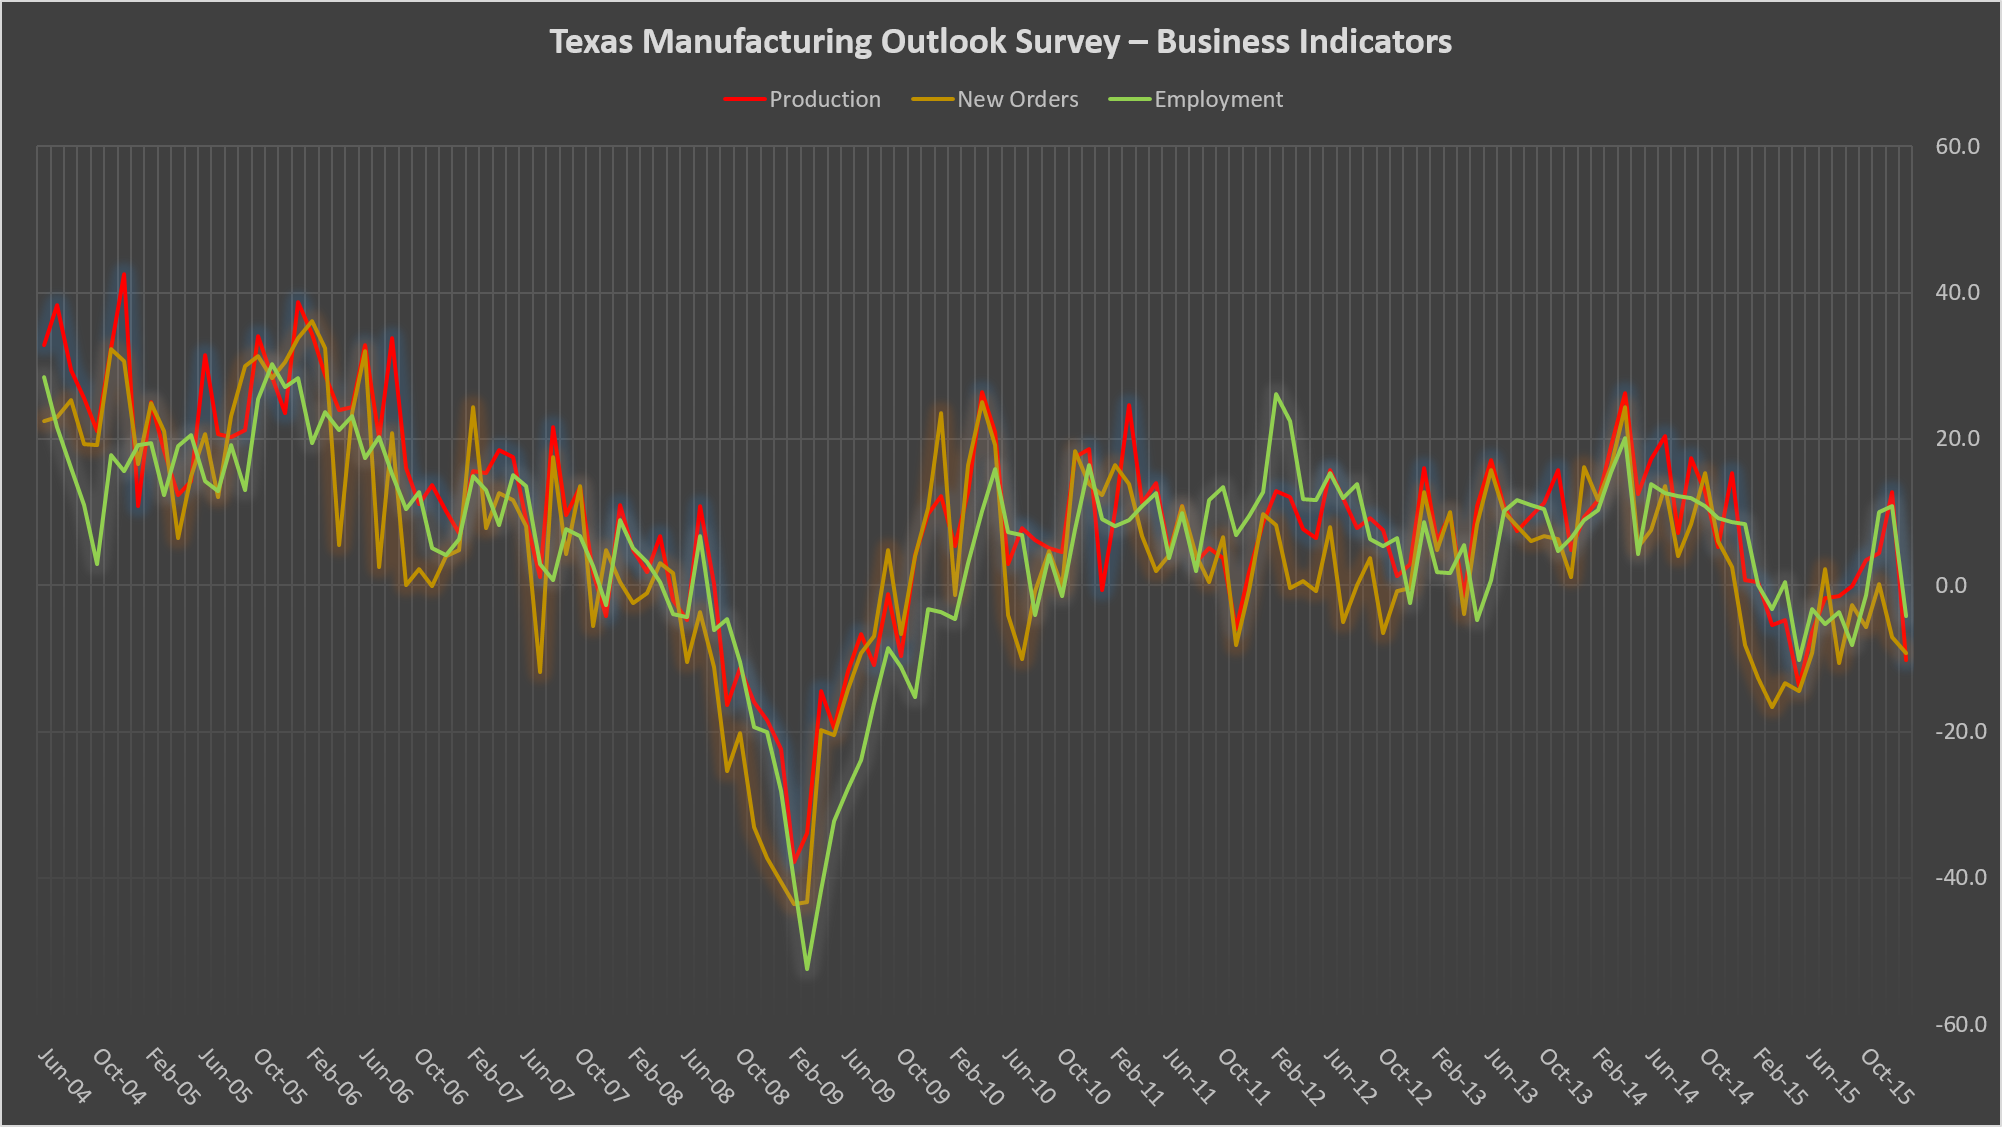 Texas Manufacturing Outlook Survey – Business Indicators Source: Federal Reserve Bank of Dallas